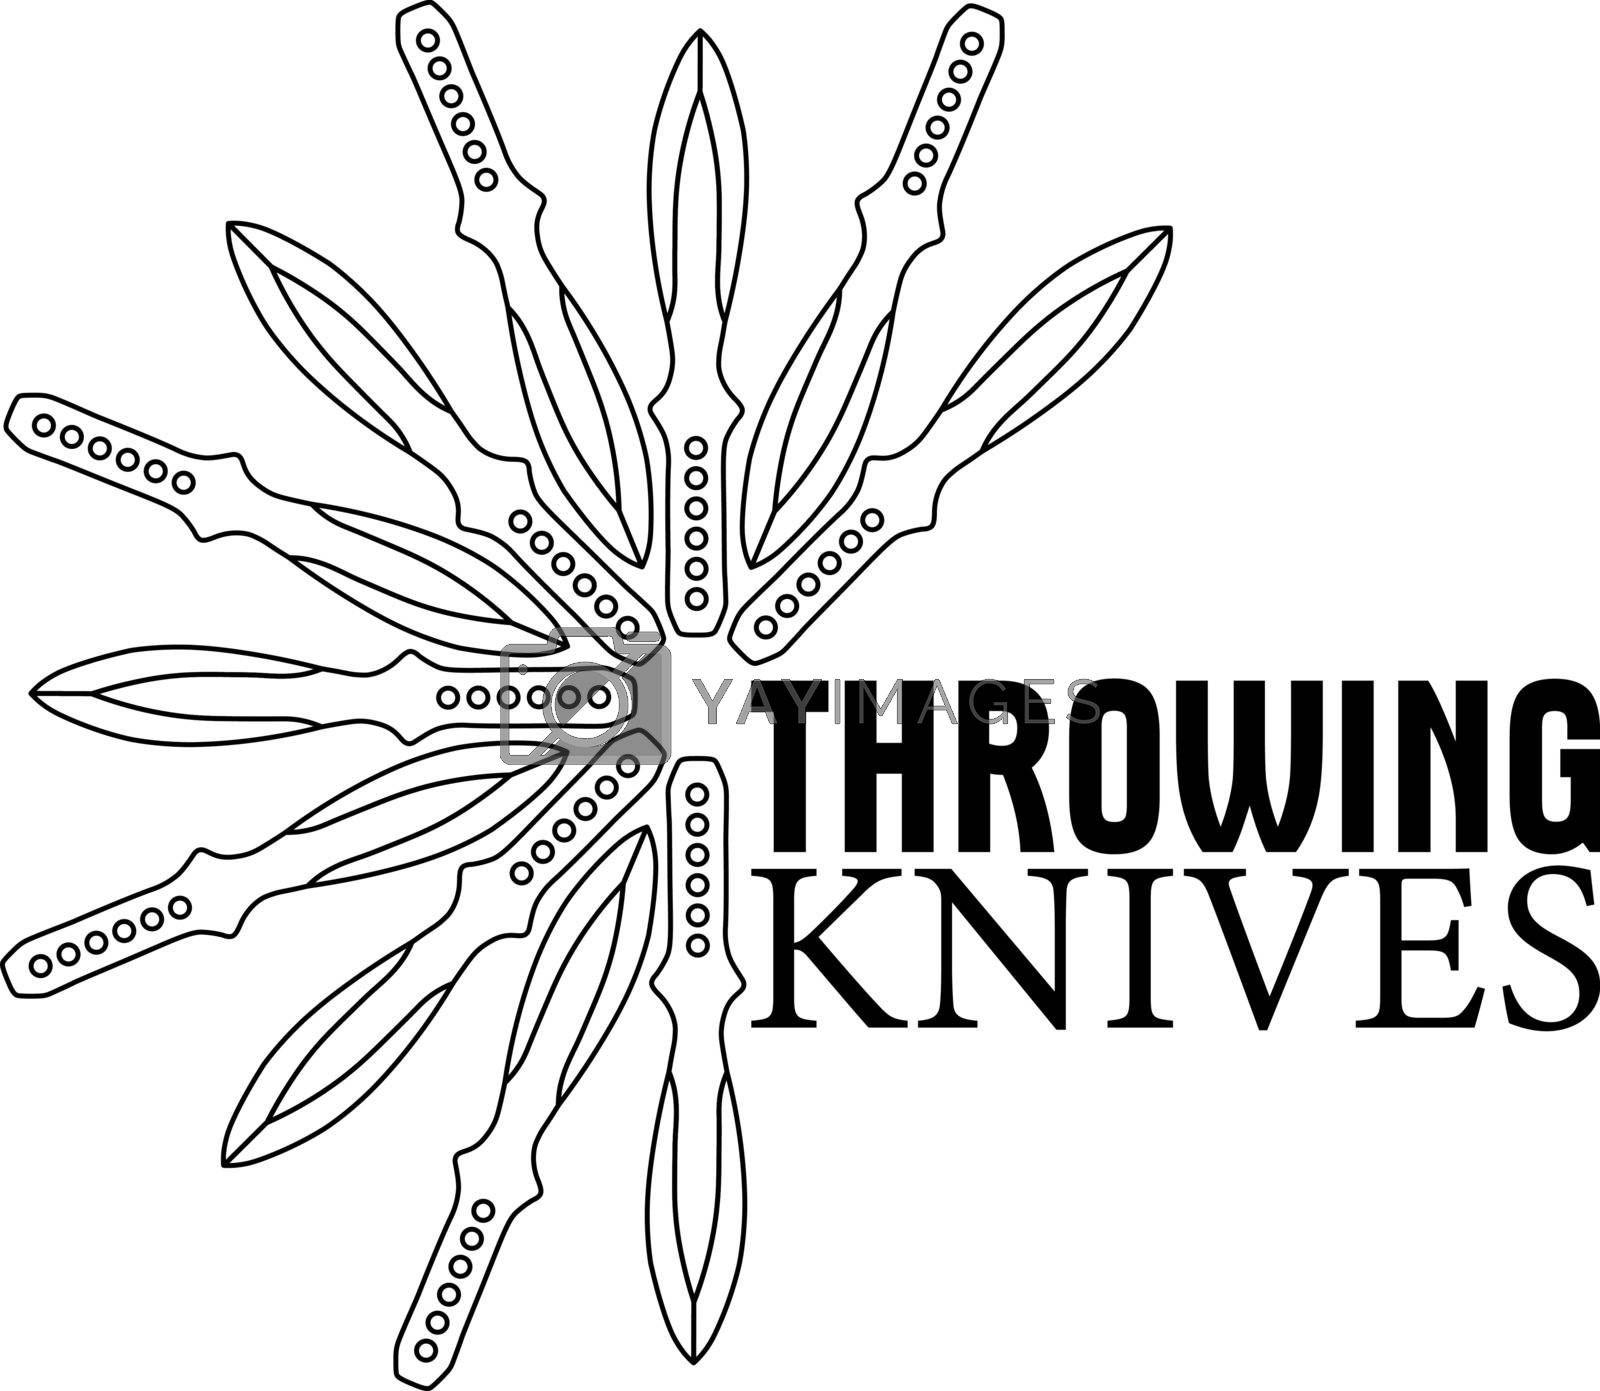 Simple black and white print or logo template with flower of contour throwing knives and text